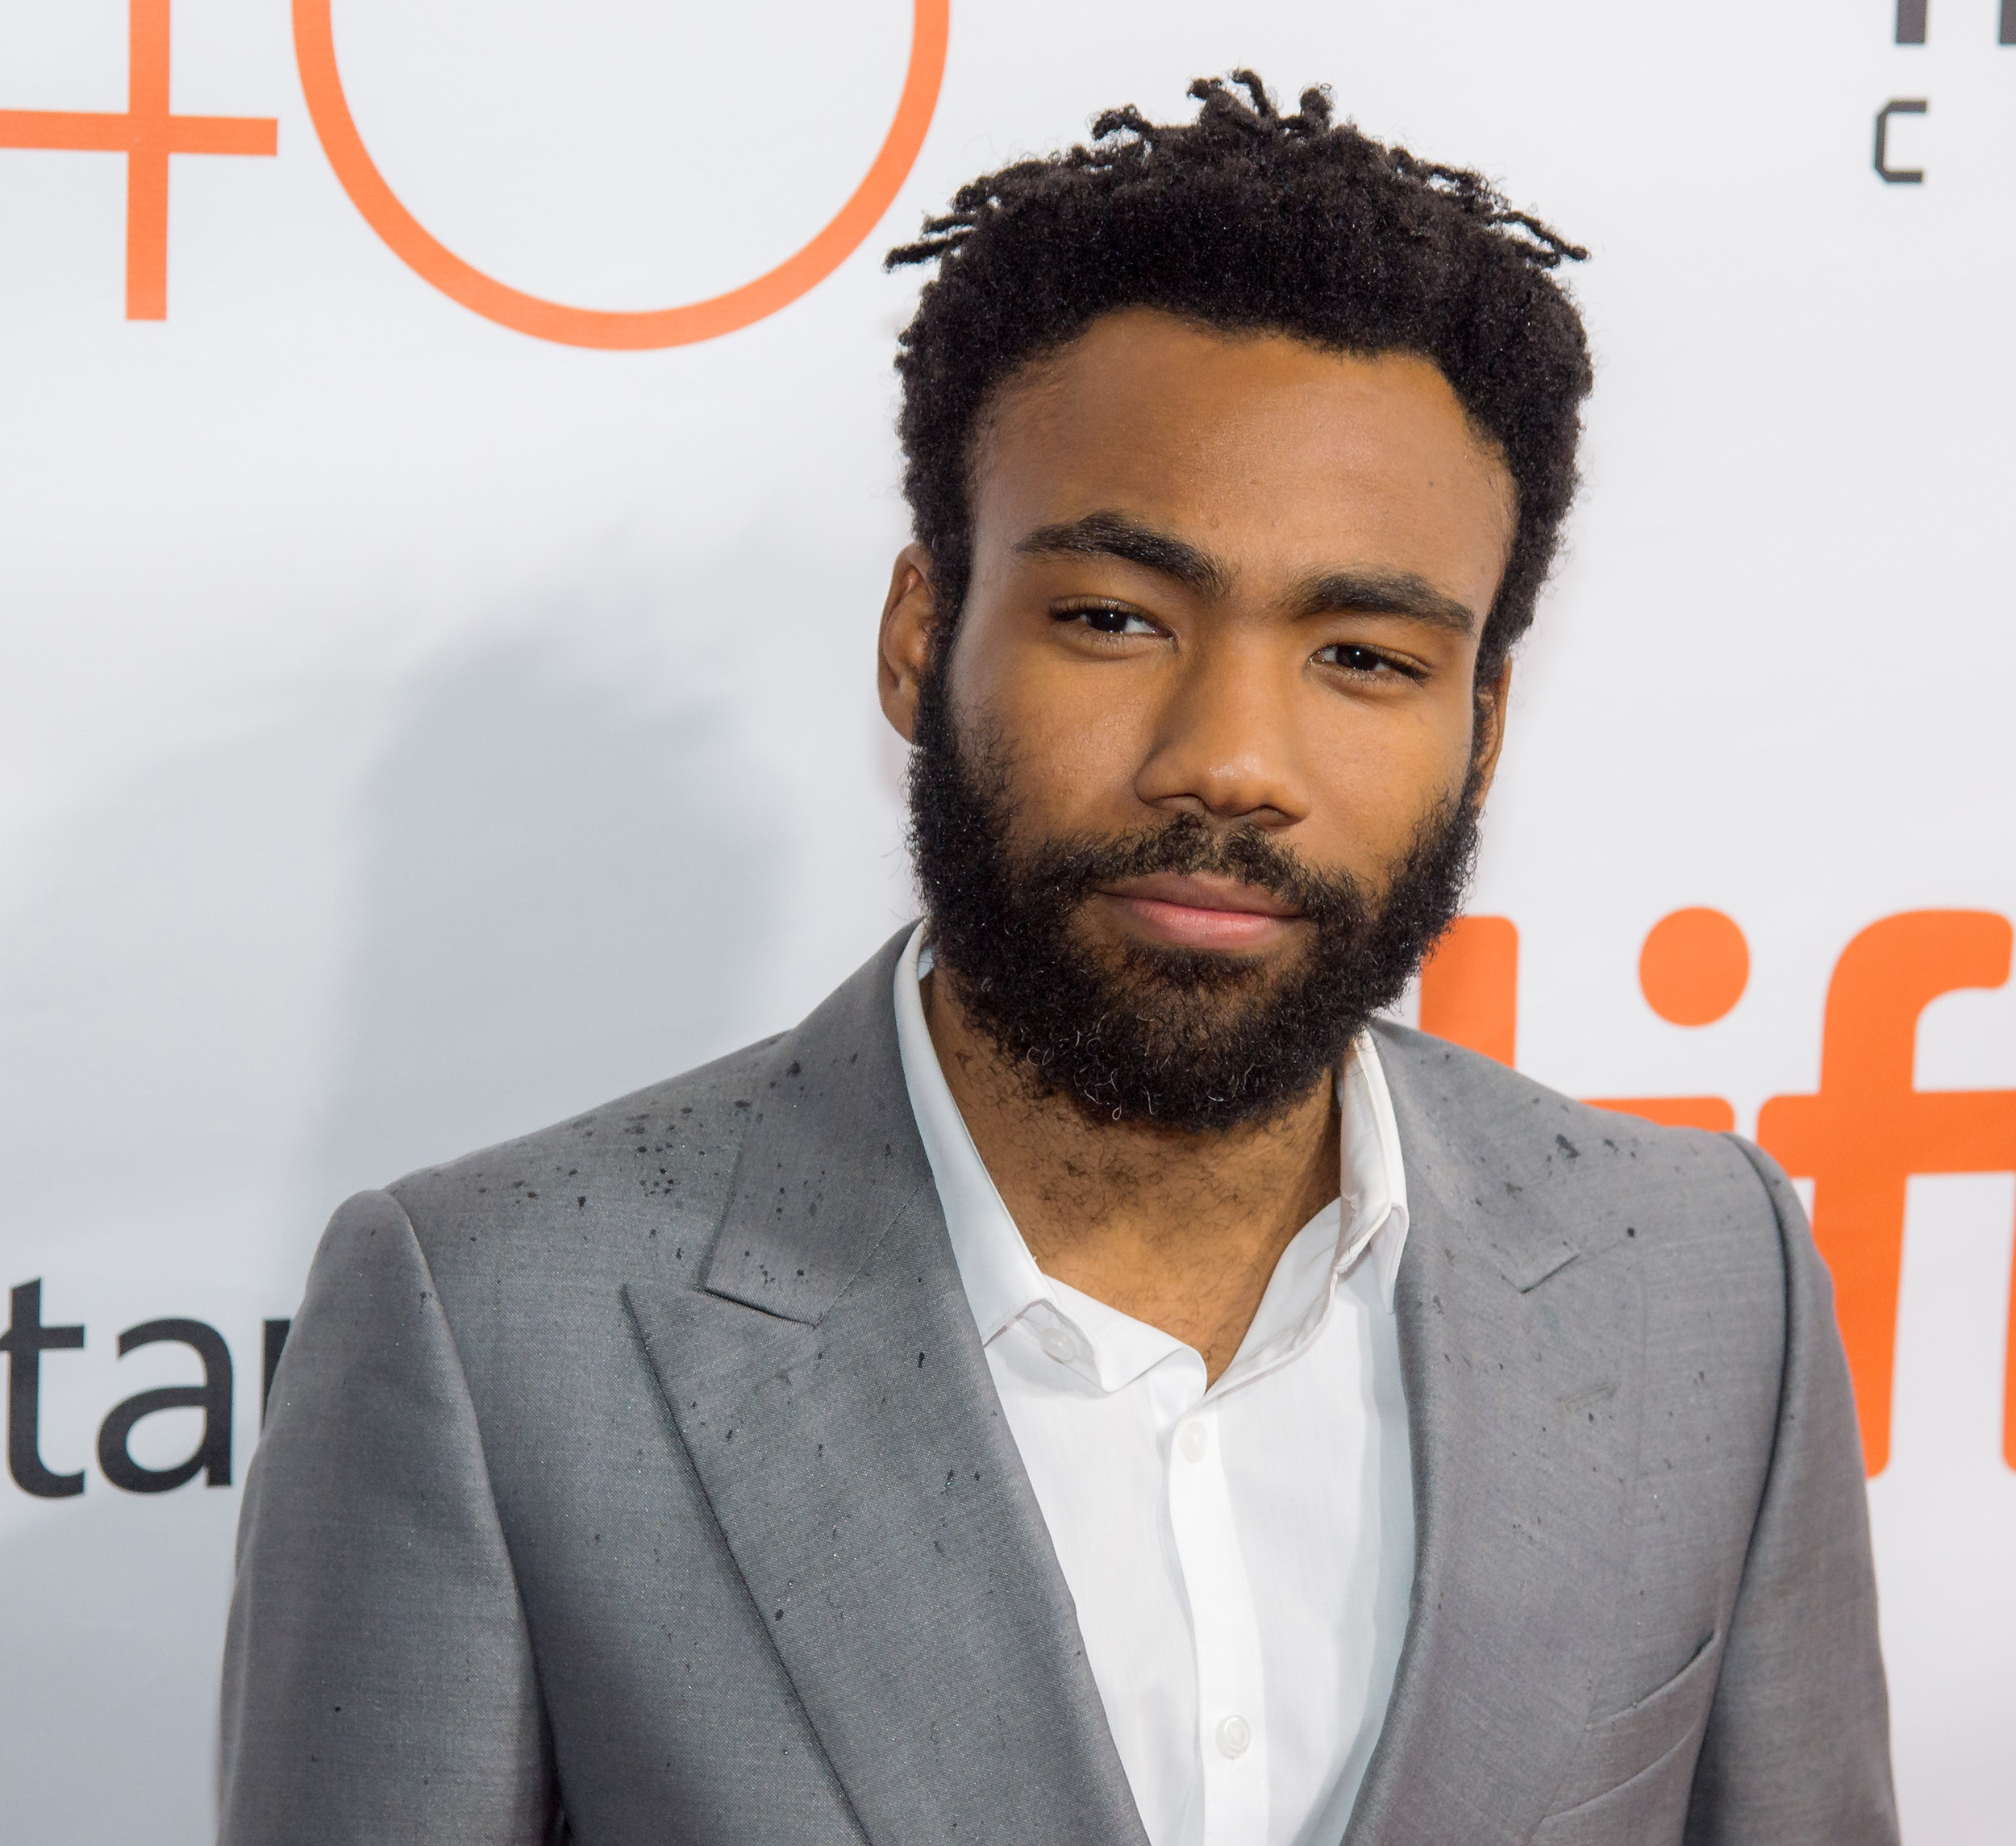 Multi-talented Donald Glover is pictured above in Toronto at the world premiere for  The Martian in  which he acted. Glover exhibits skills in music, film and writing. The artist will also appear as Lando Calrissian in  Solo: A Star Wars Story. ( Bill Ingalls/Creative Commons )